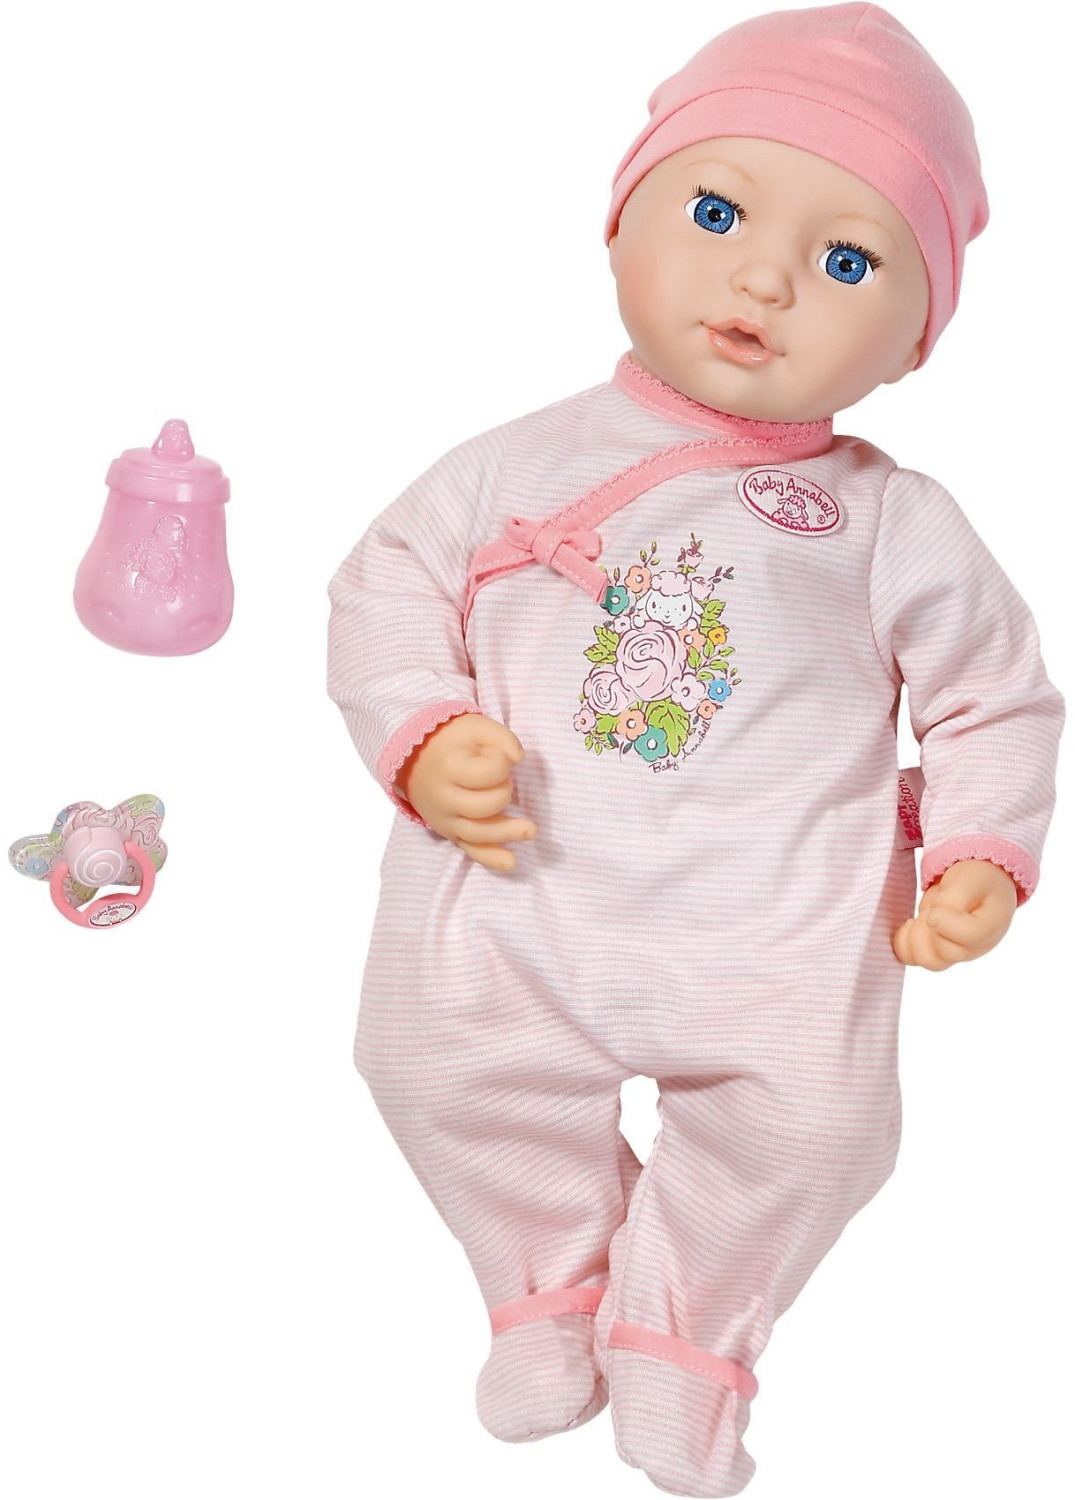 Baby Annabell 794227